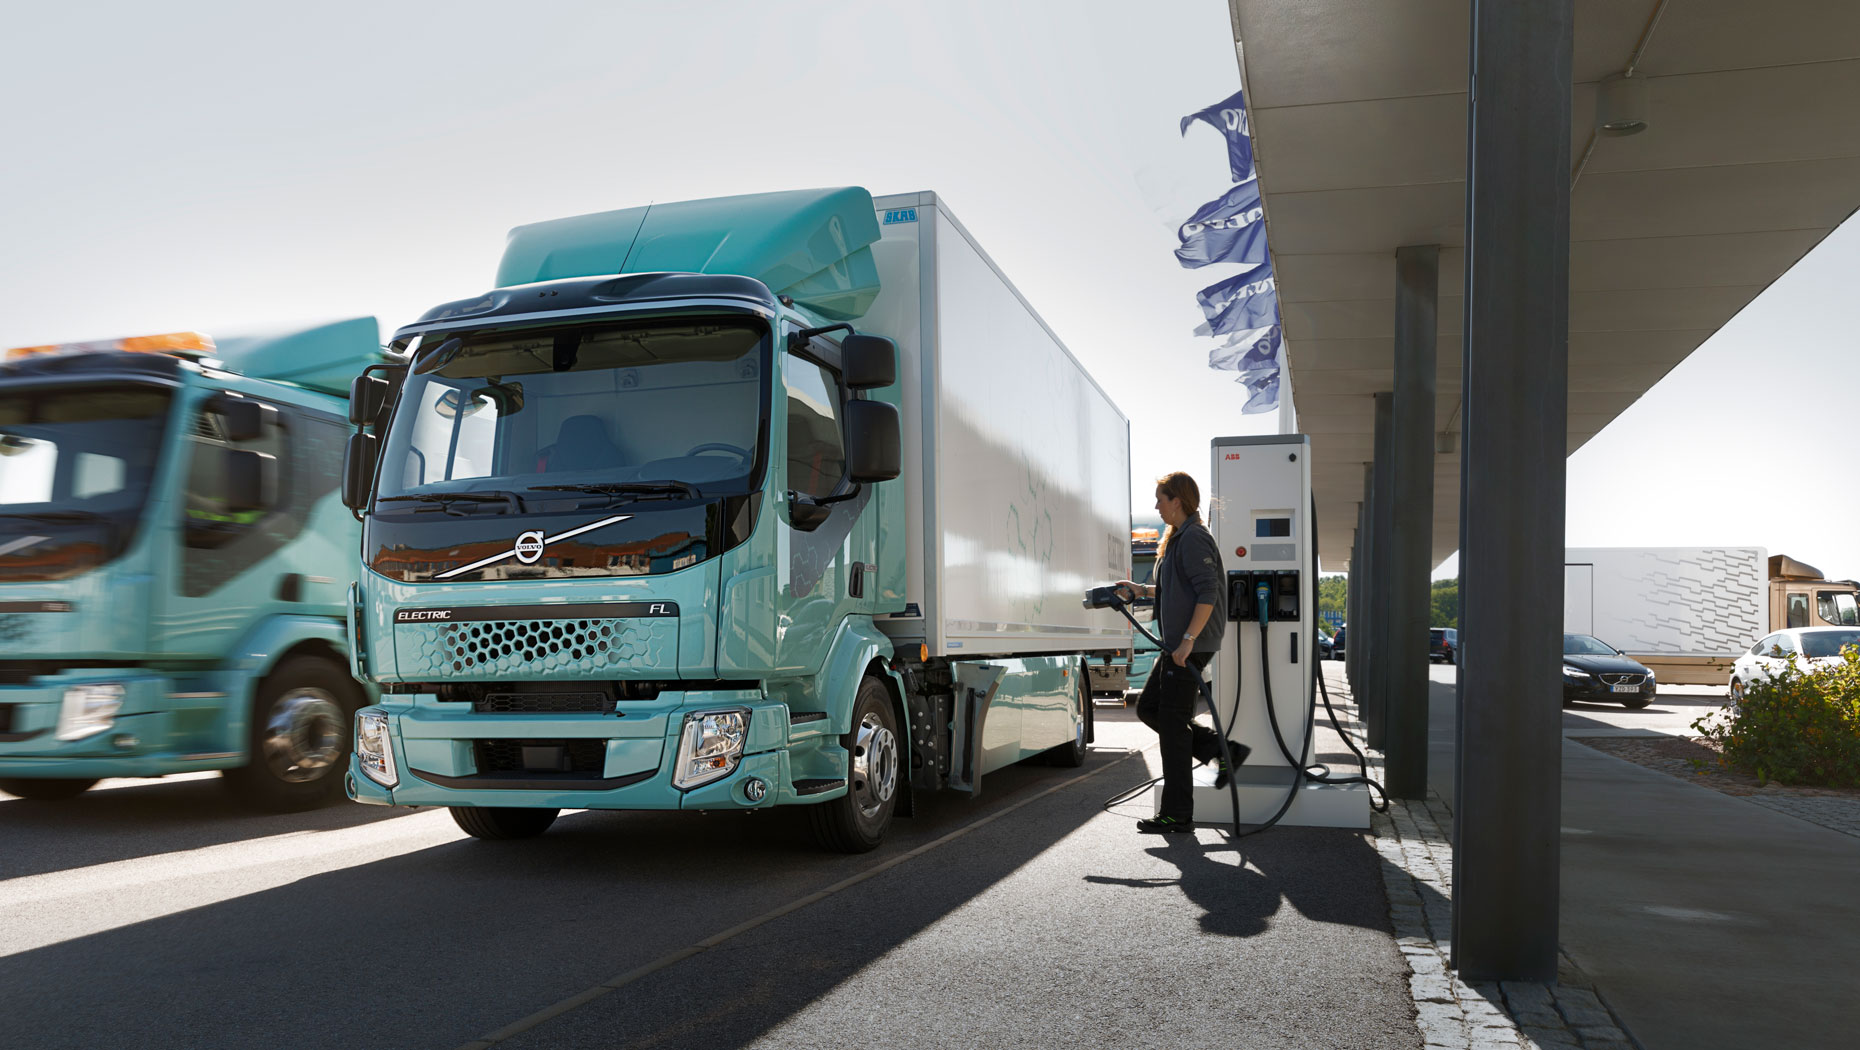 Volvo Trucks Announced This Week That They Delivered Fl Electric To A Refuse Truck Waste And Recycling Company Renova Distribution